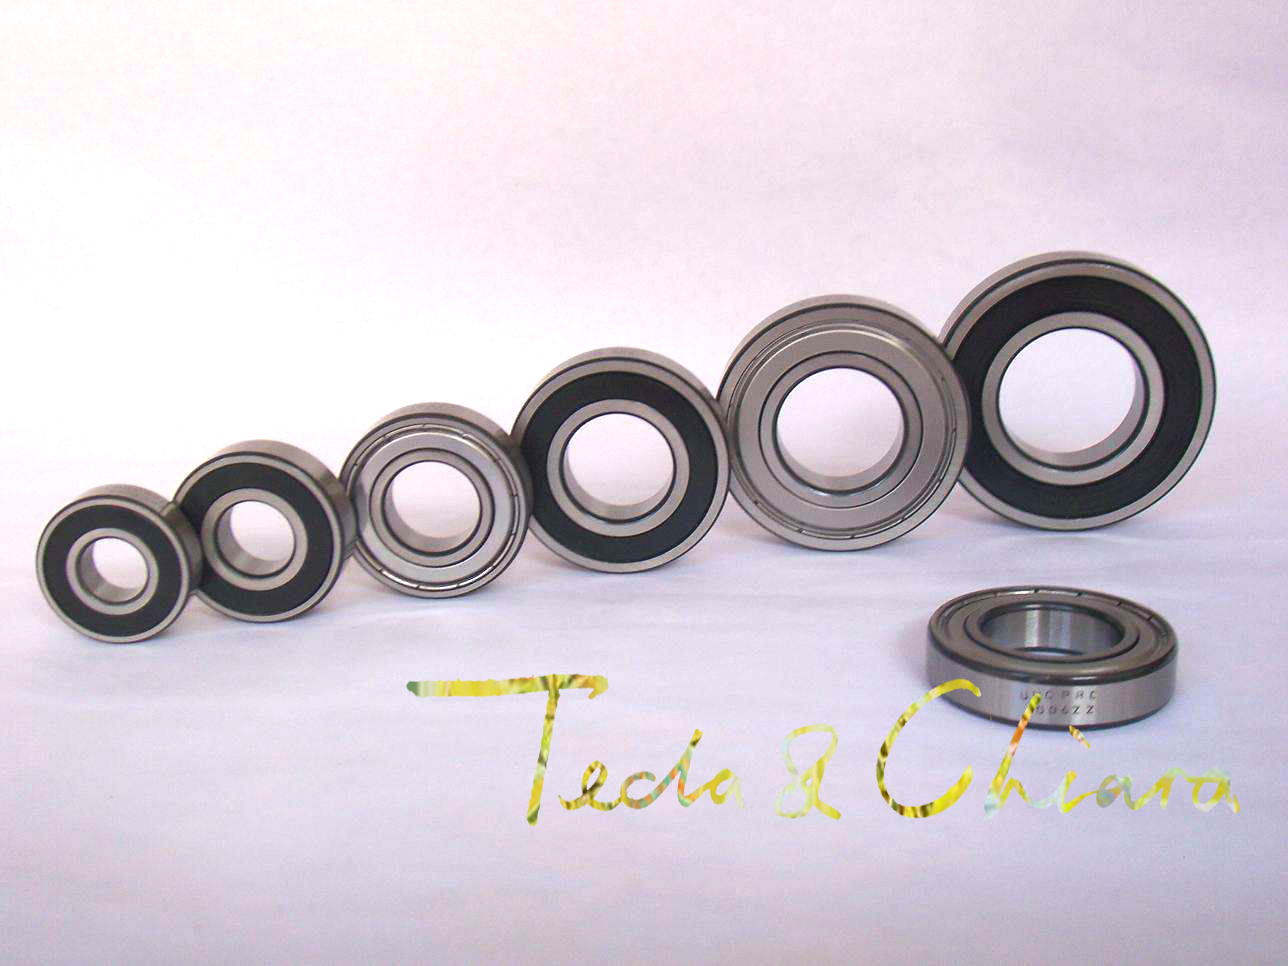 MR148 MR148ZZ MR148RS MR148-2Z MR148Z MR148-2RS ZZ RS RZ 2RZ L-1480ZZ Deep Groove Ball Bearings 8 x 14 x 4mm High Quality 604 604zz 604rs 604 2z 604z 604 2rs zz rs rz 2rz deep groove ball bearings 4 x 12 x 4mm high quality